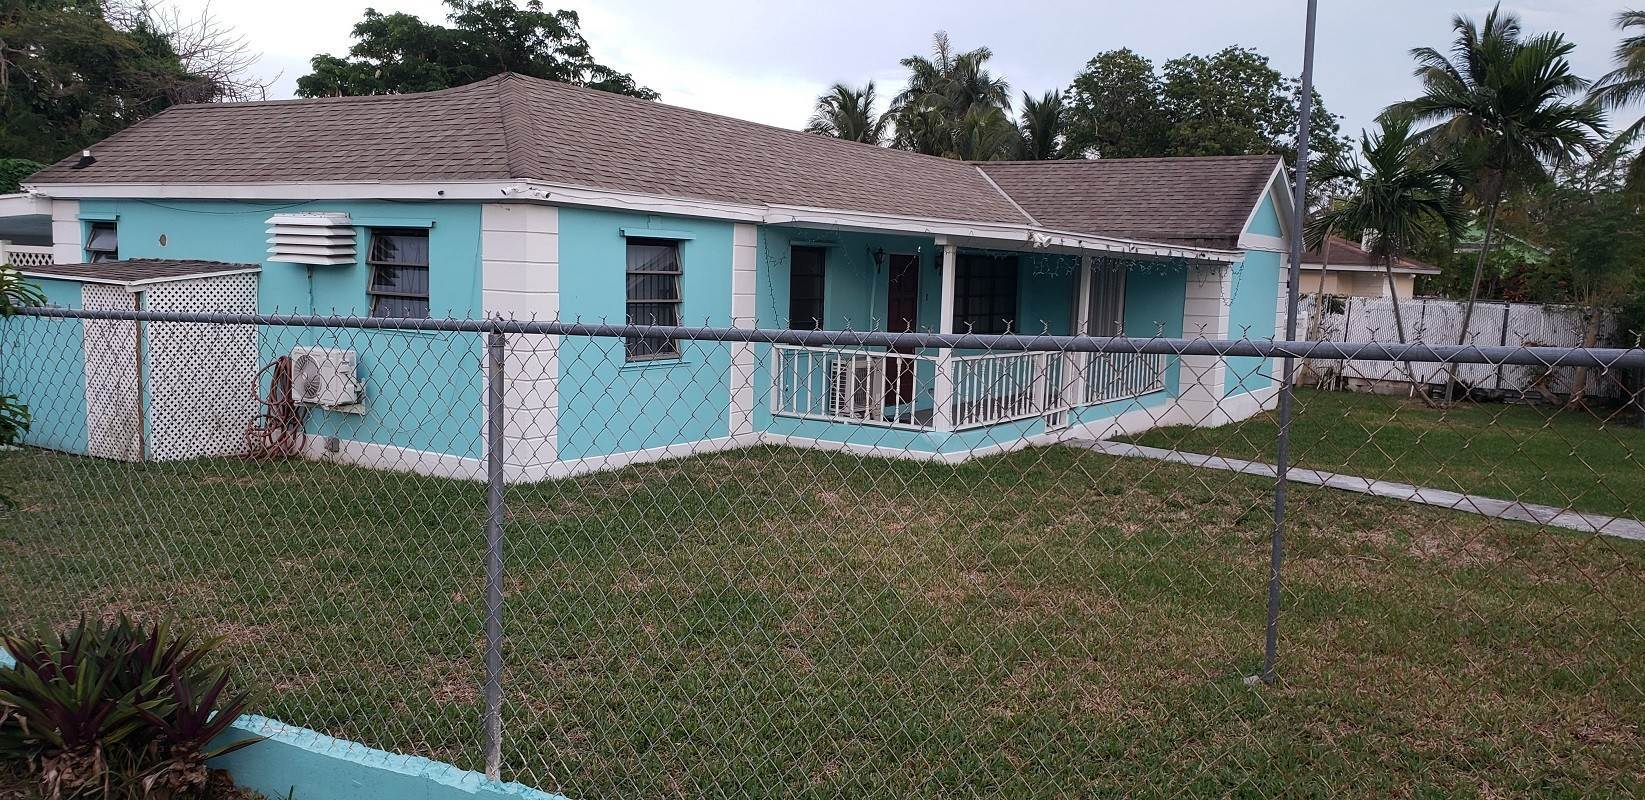 Single Family Homes for Rent at 2 Bed 1 Bath Residence #7 Vanga Court, Blair Estates - MLS 43854 Blair Estates, Eastern Road, Nassau And Paradise Island Bahamas